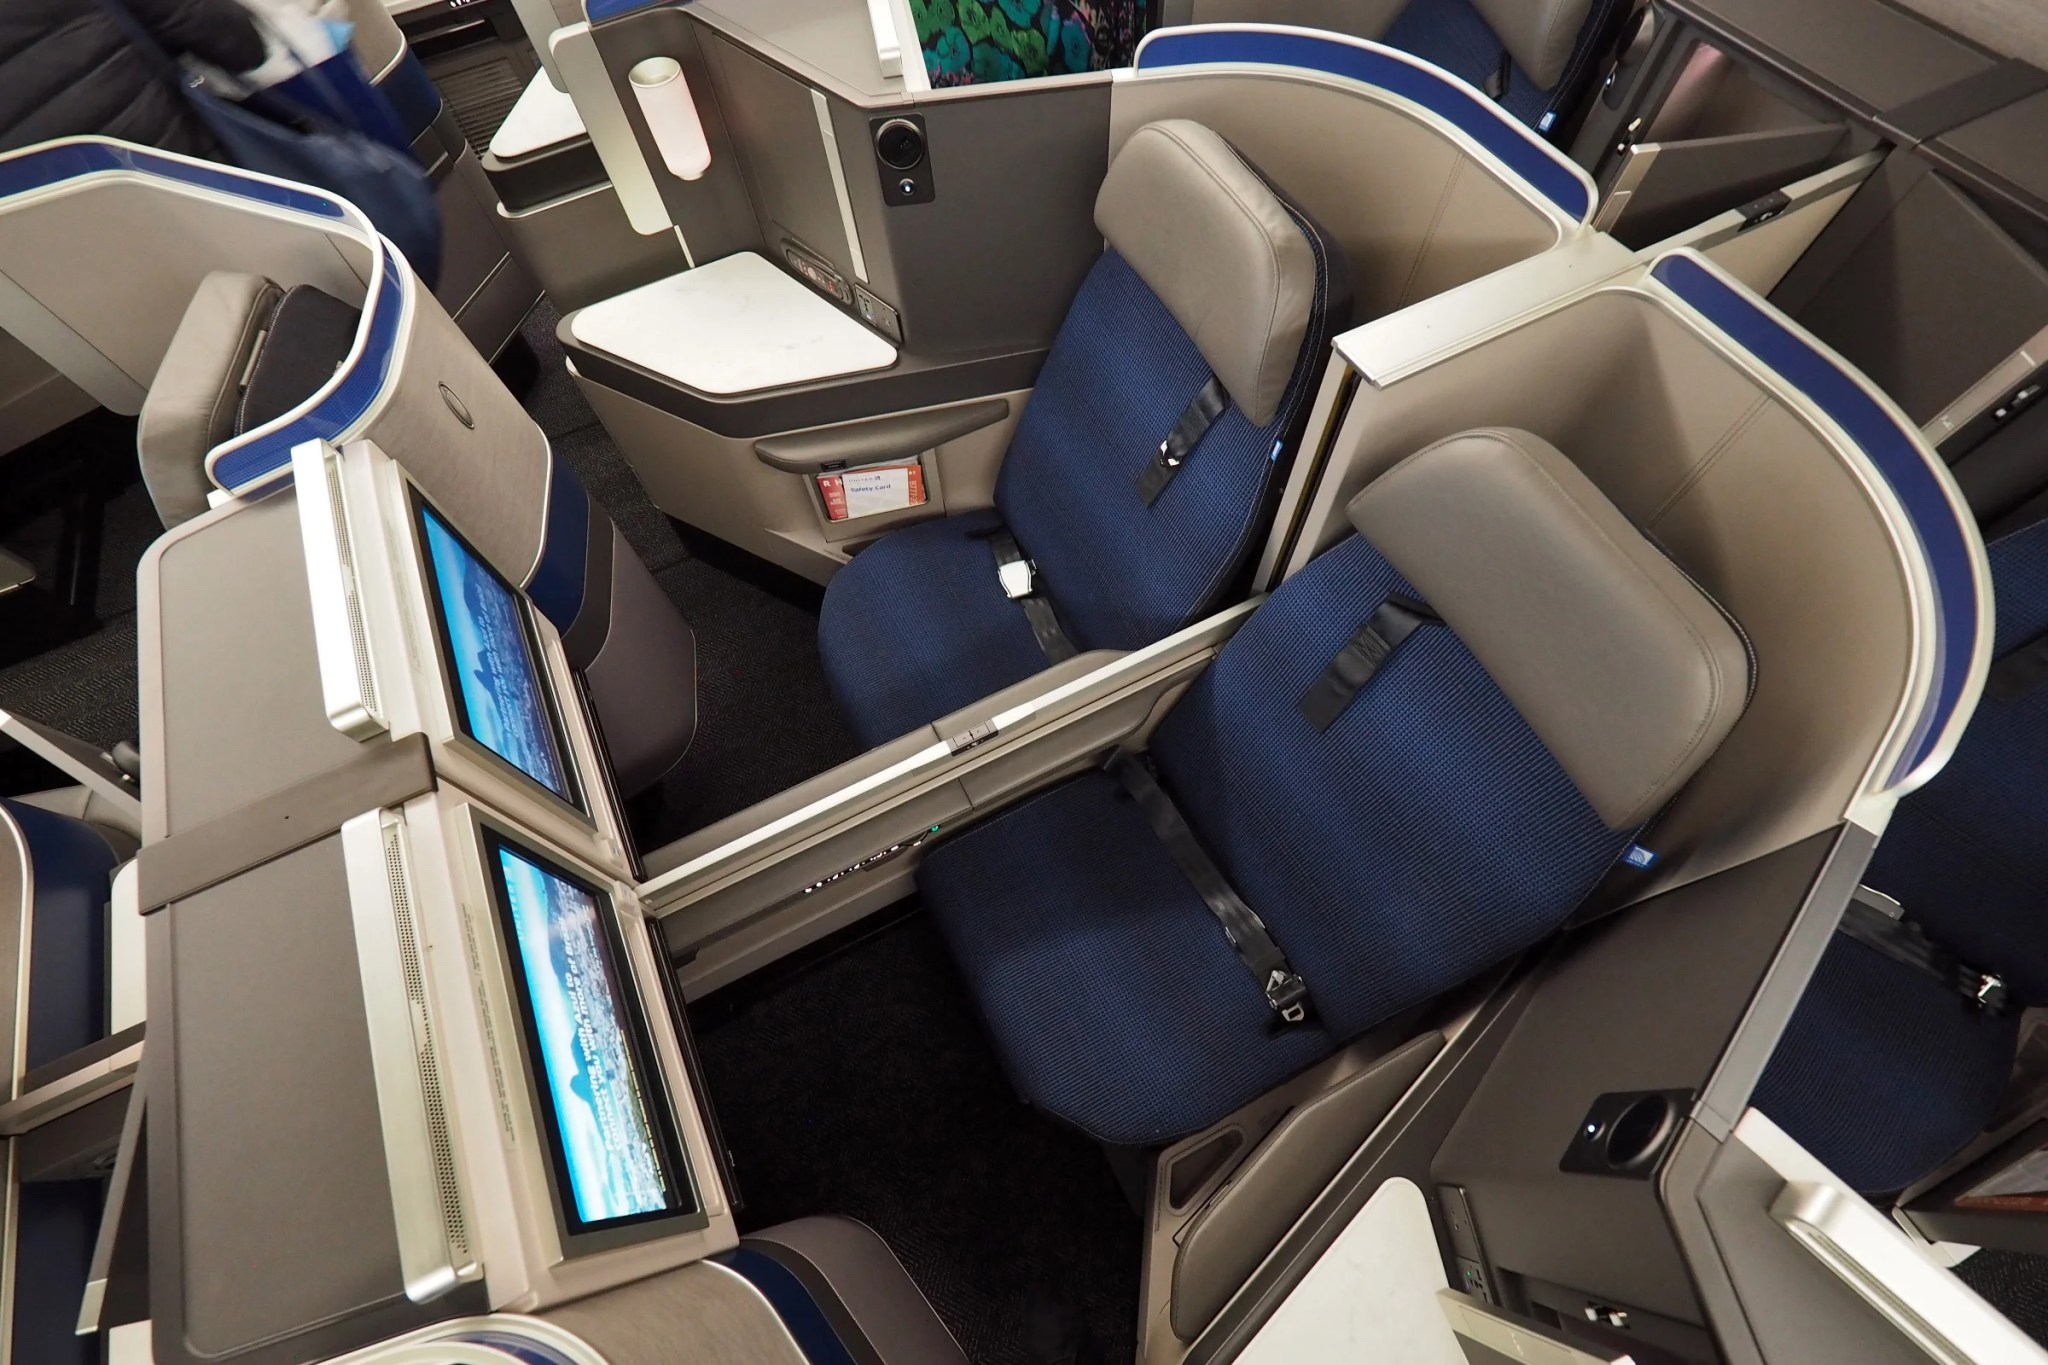 The 787-10 will offer a modified version of United